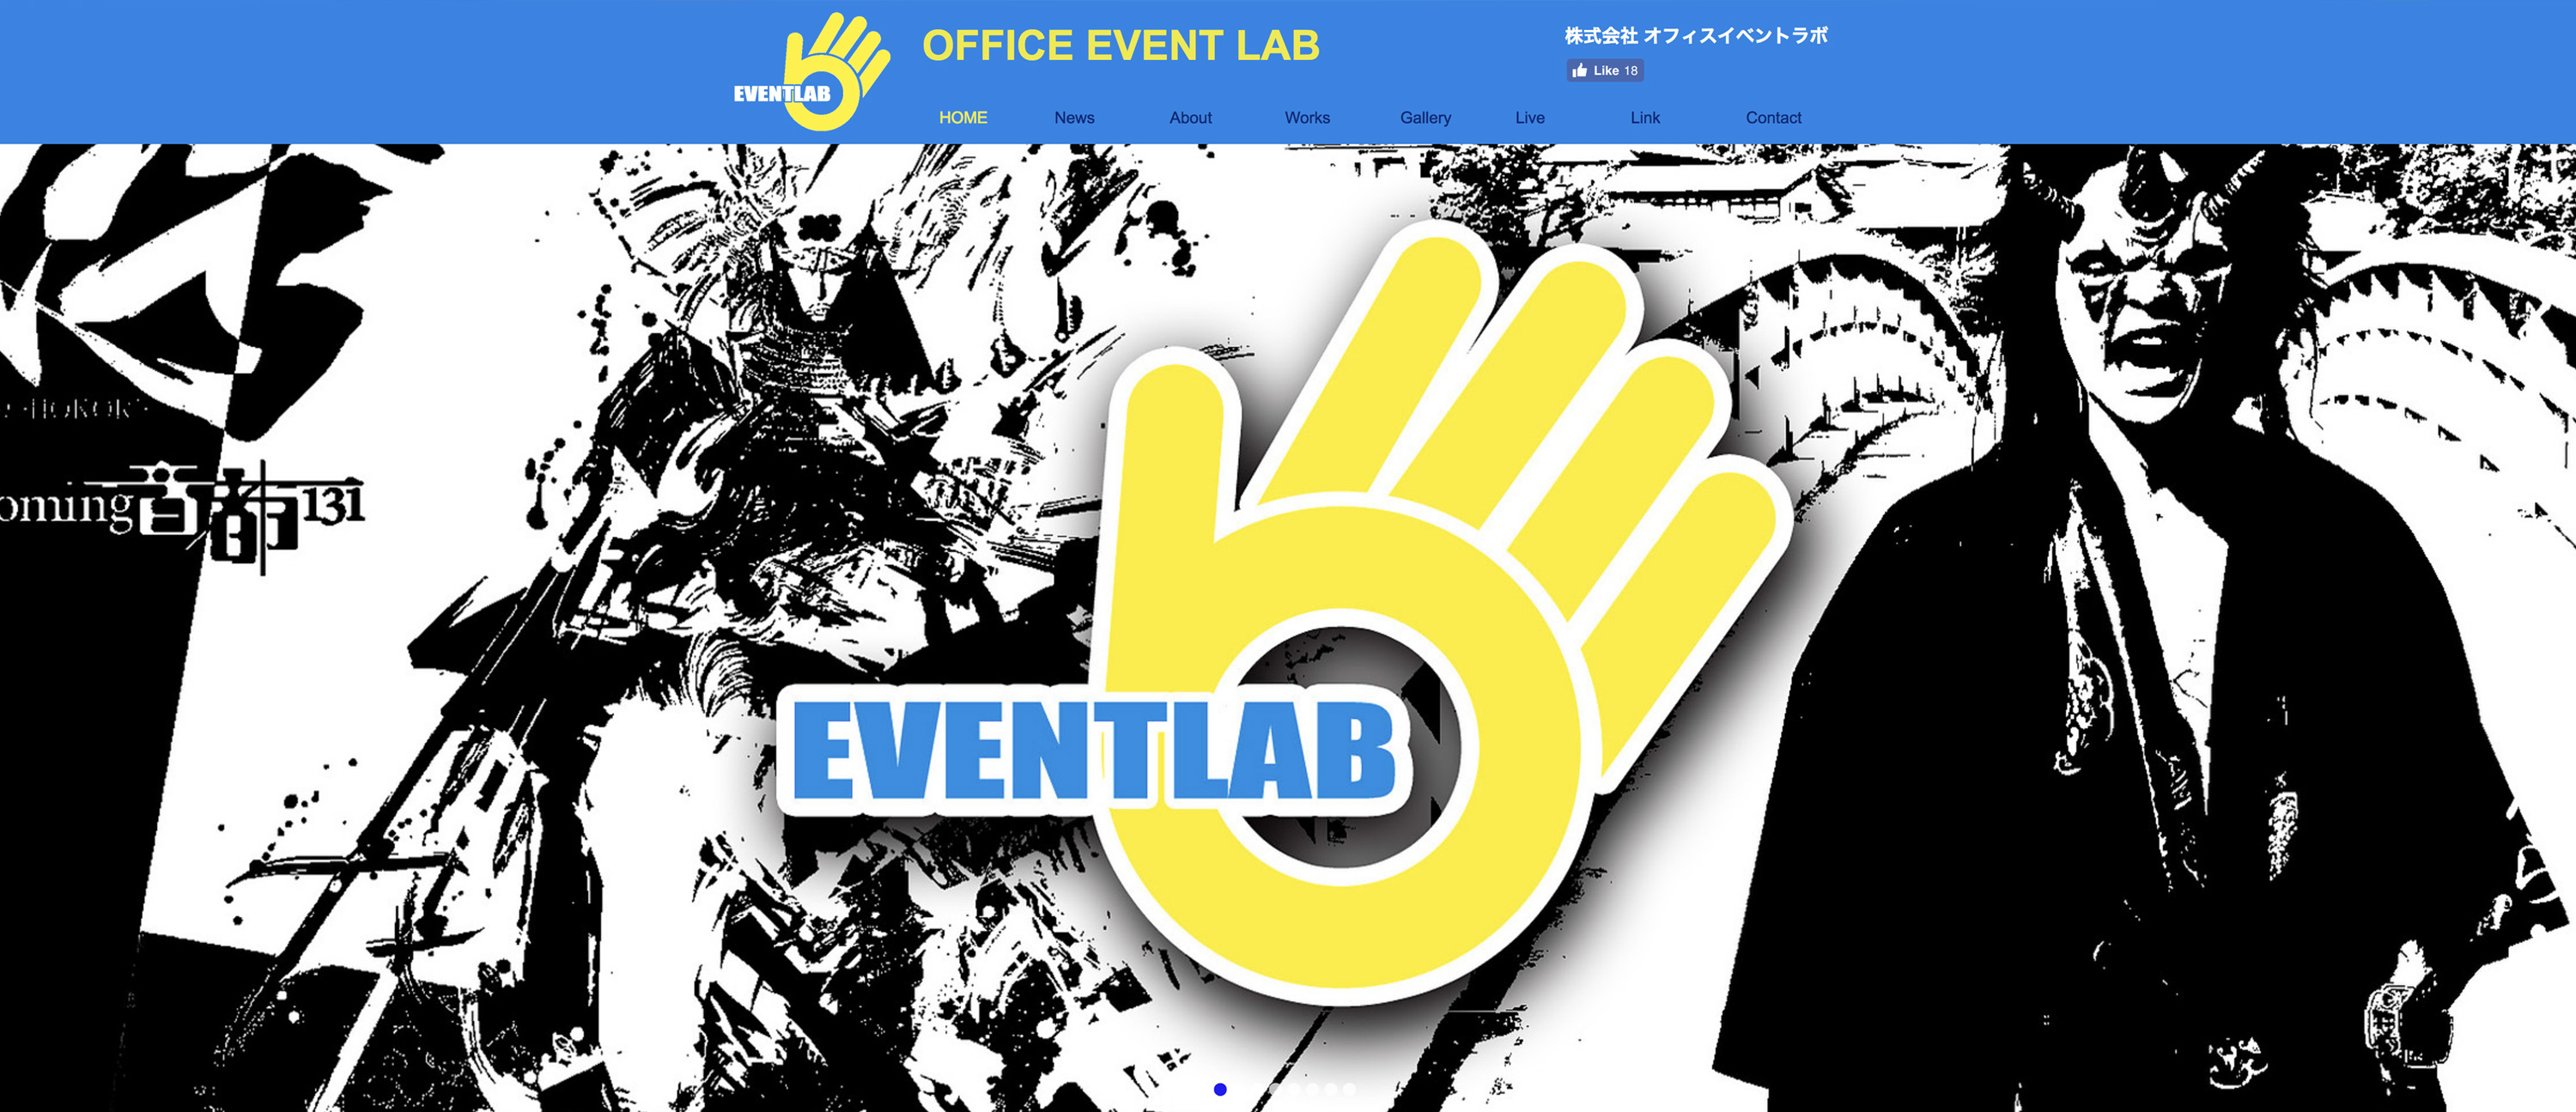 OFFICE EVENT LAB